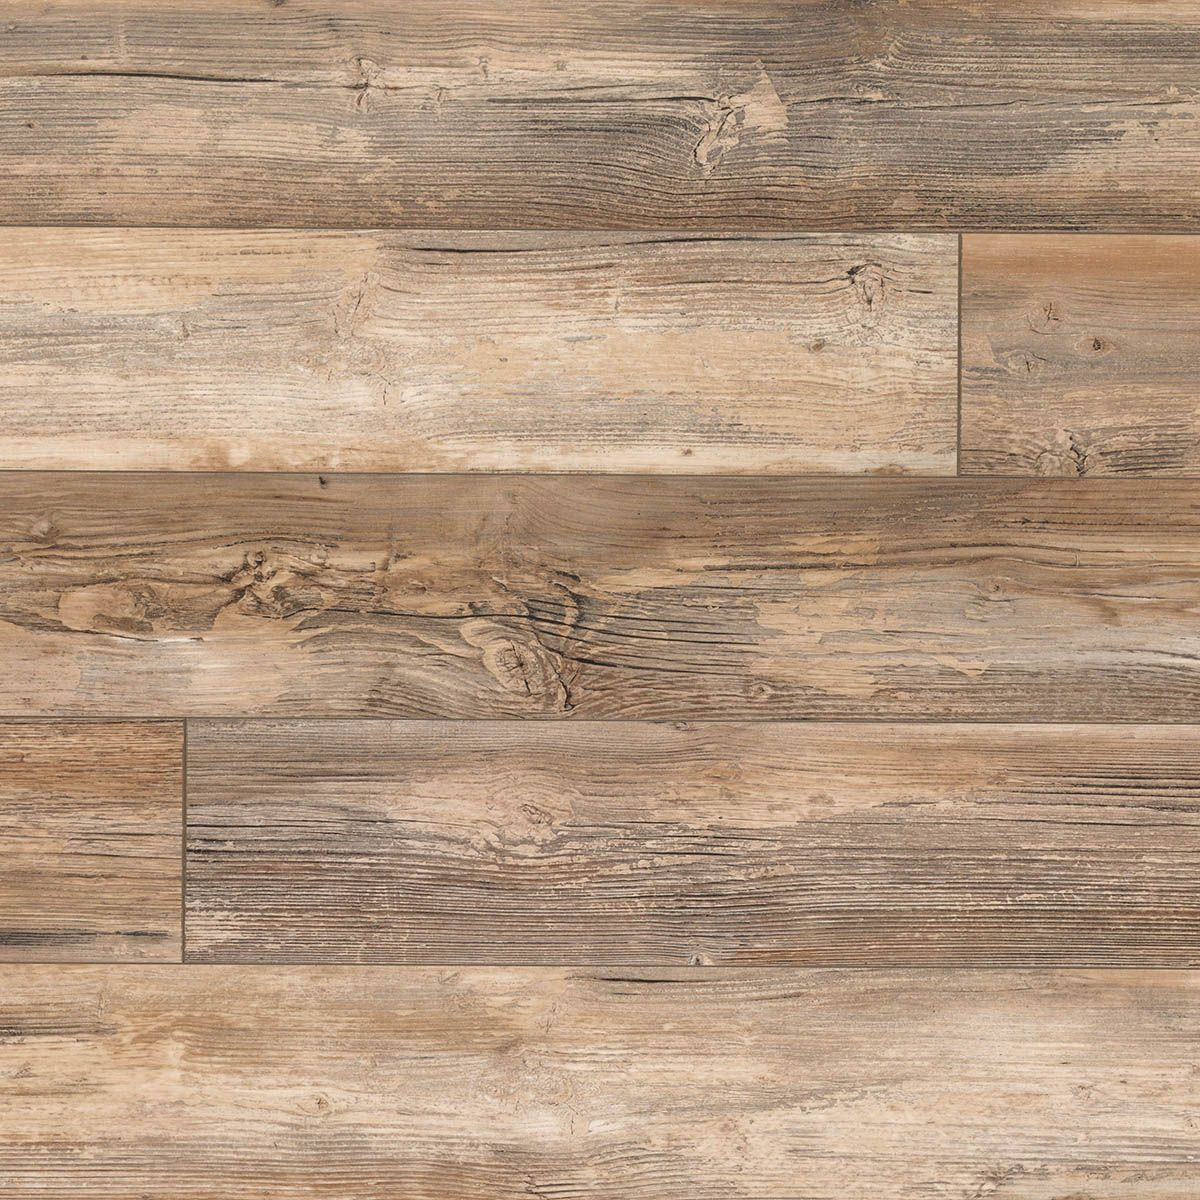 install bruce hardwood floors yourself of flooring gallery mozzone lumber regarding a warm toffee brown with gray accents just like these planks theyre perfect for elegant comfortable looks gorgeous distressed laminate floor